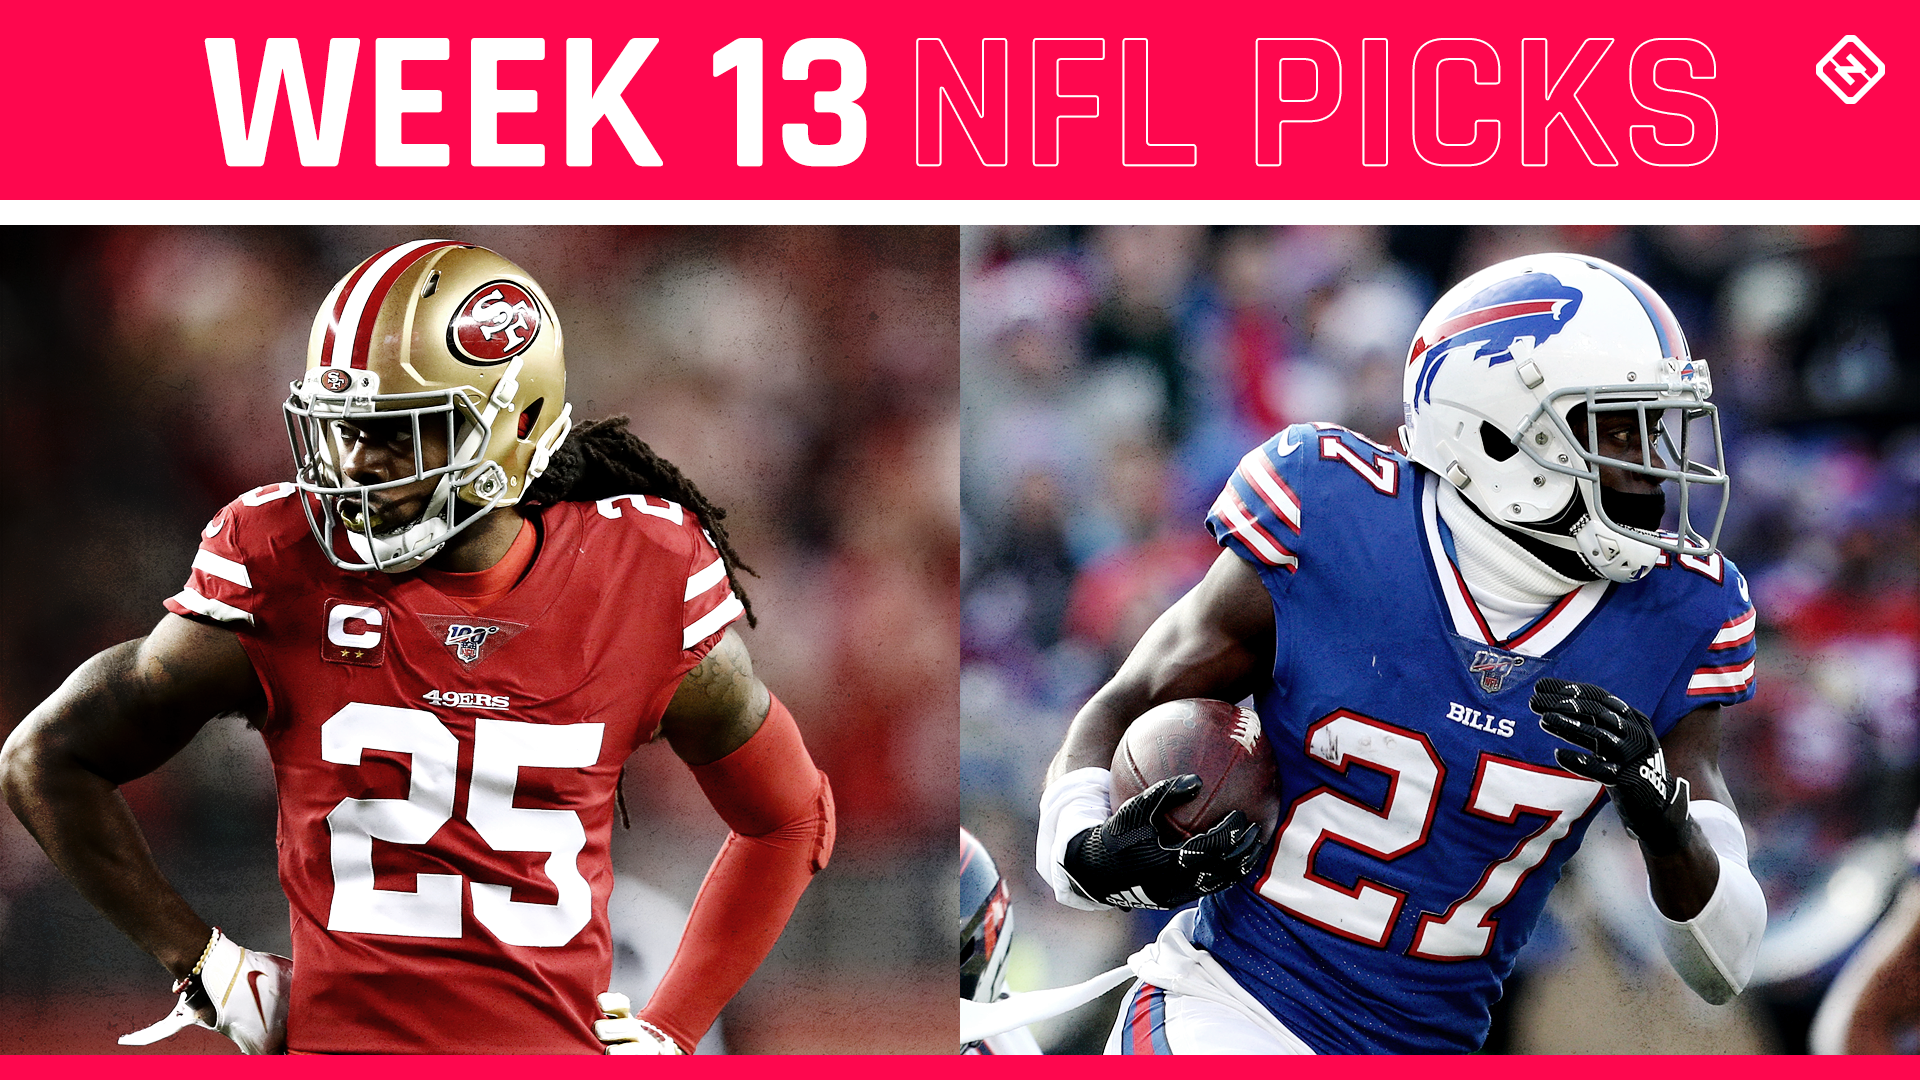 Nfl Picks Predictions For Week 13 49ers Upset Bills Steelers Get A Scare Texans Hurt Colts Playoff Hopes Sporting News